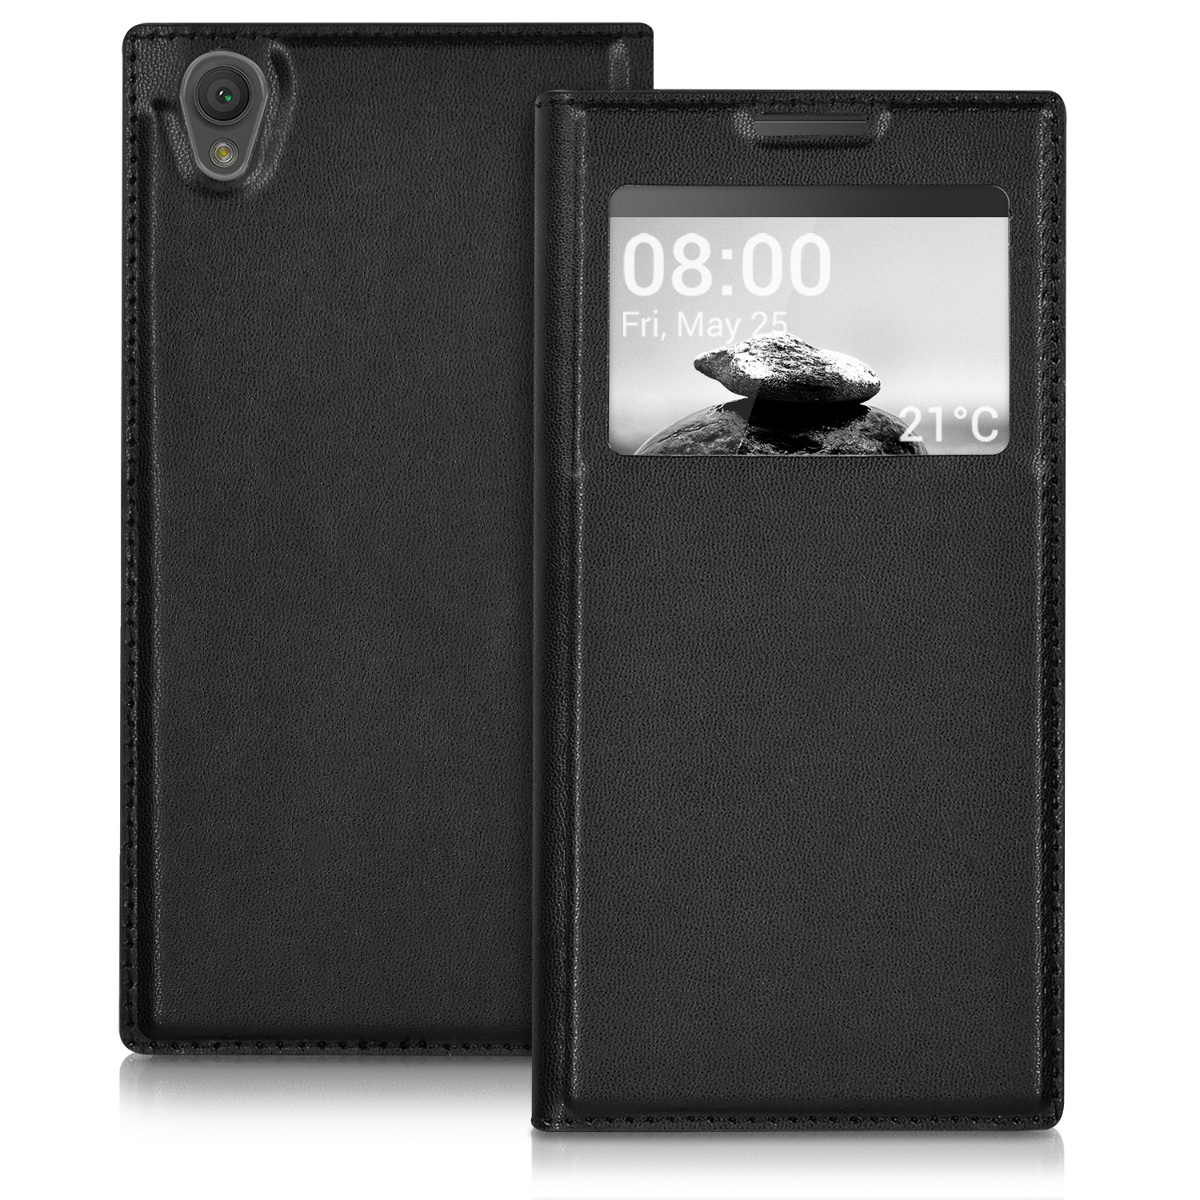 kwmobile-WINDOW-SYNTHETIC-LEATHER-FLIP-COVER-FOR-SONY-XPERIA-L1-CASE-SLIM-BACK